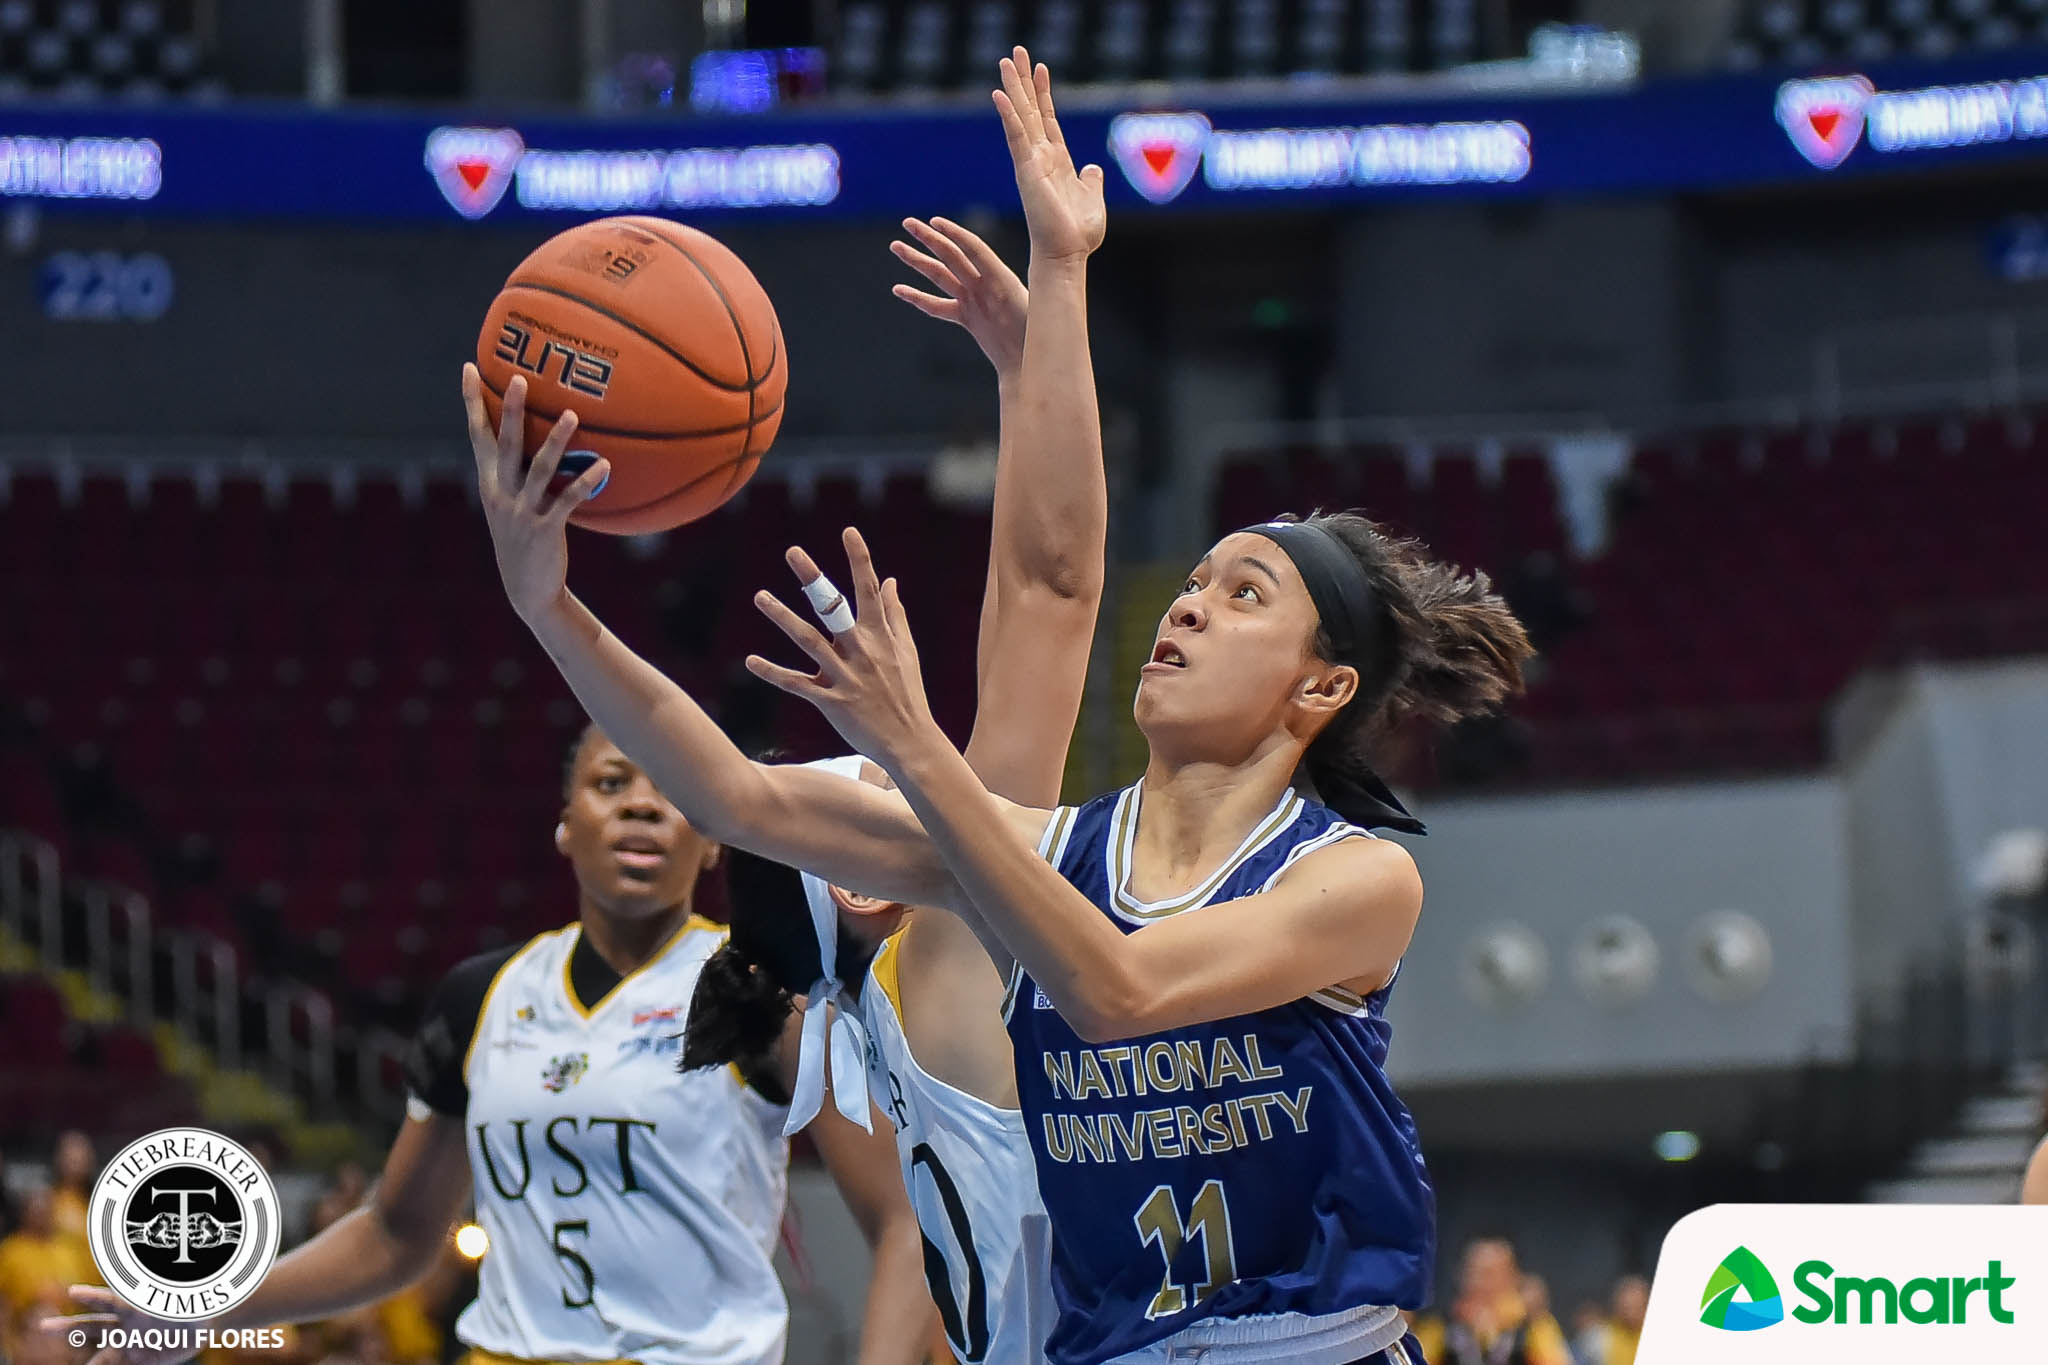 Tiebreaker Times Kaye Pingol has only one regret in two years with NU Basketball News NU UAAP  UAAP Season 82 Women's Basketball UAAP Season 82 NU Women's Basketball Kaye Pingol